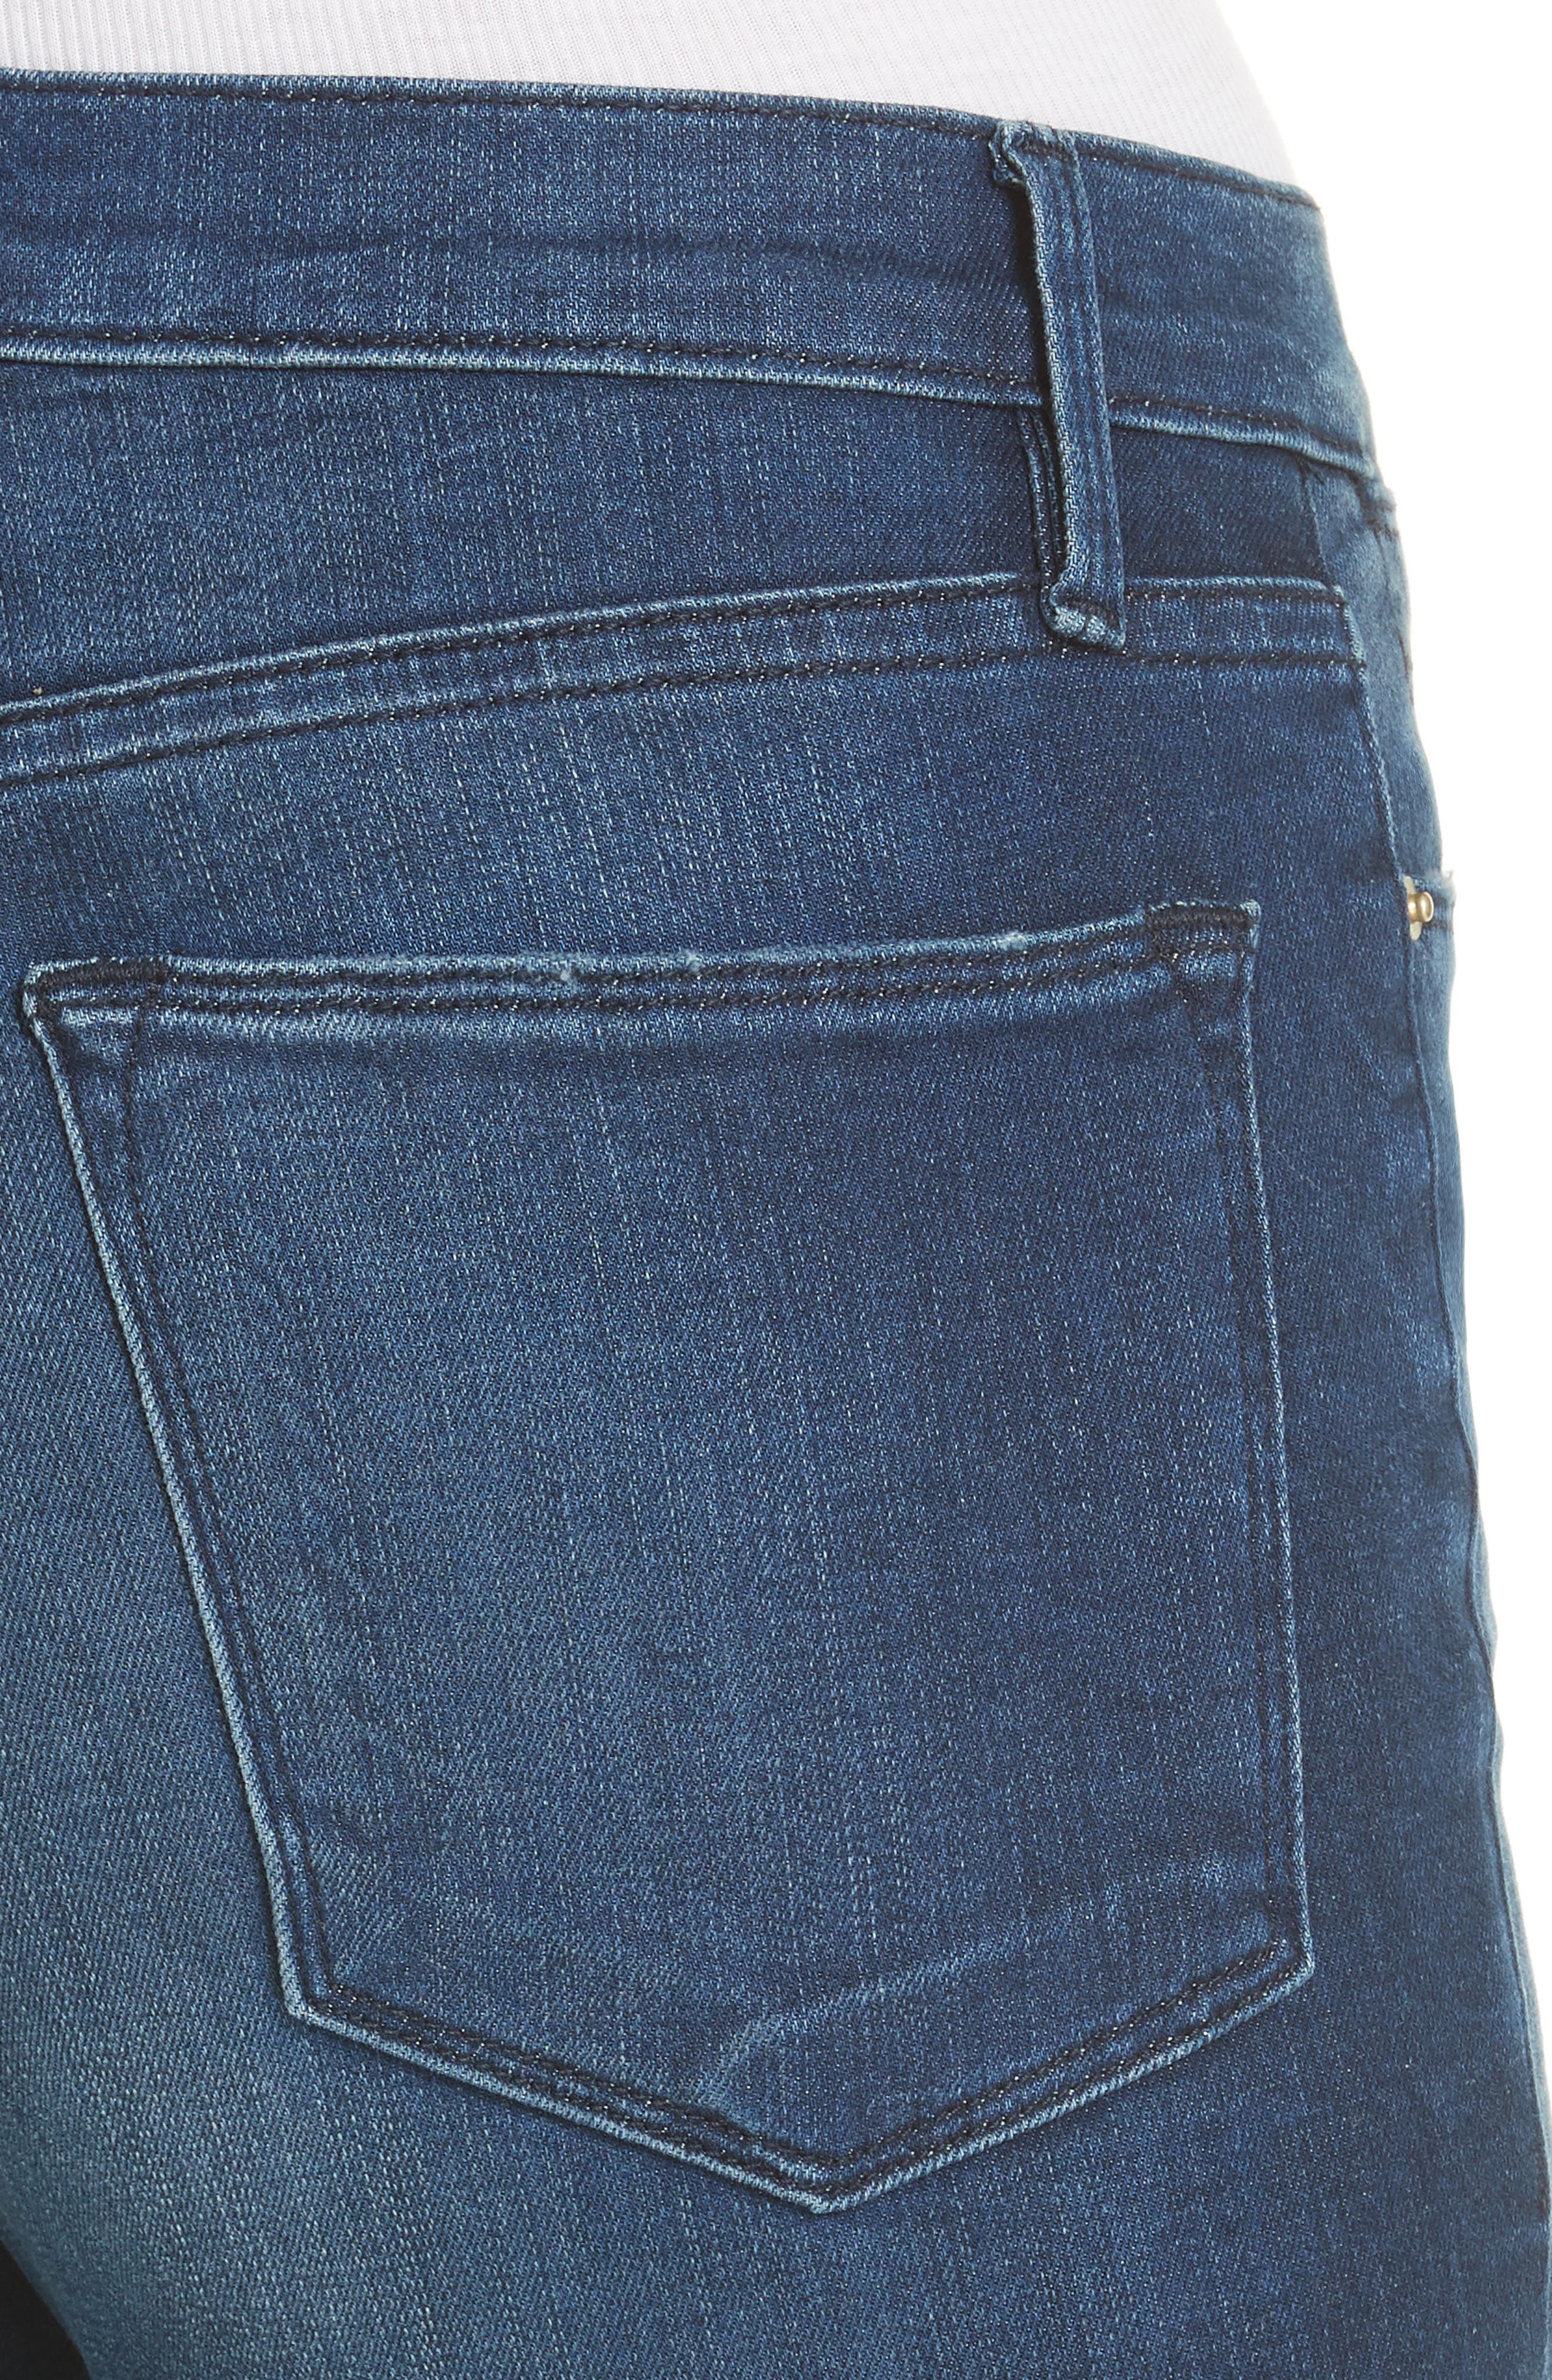 Le High Ankle Skinny Jeans,                             Alternate thumbnail 4, color,                             Silver Spring